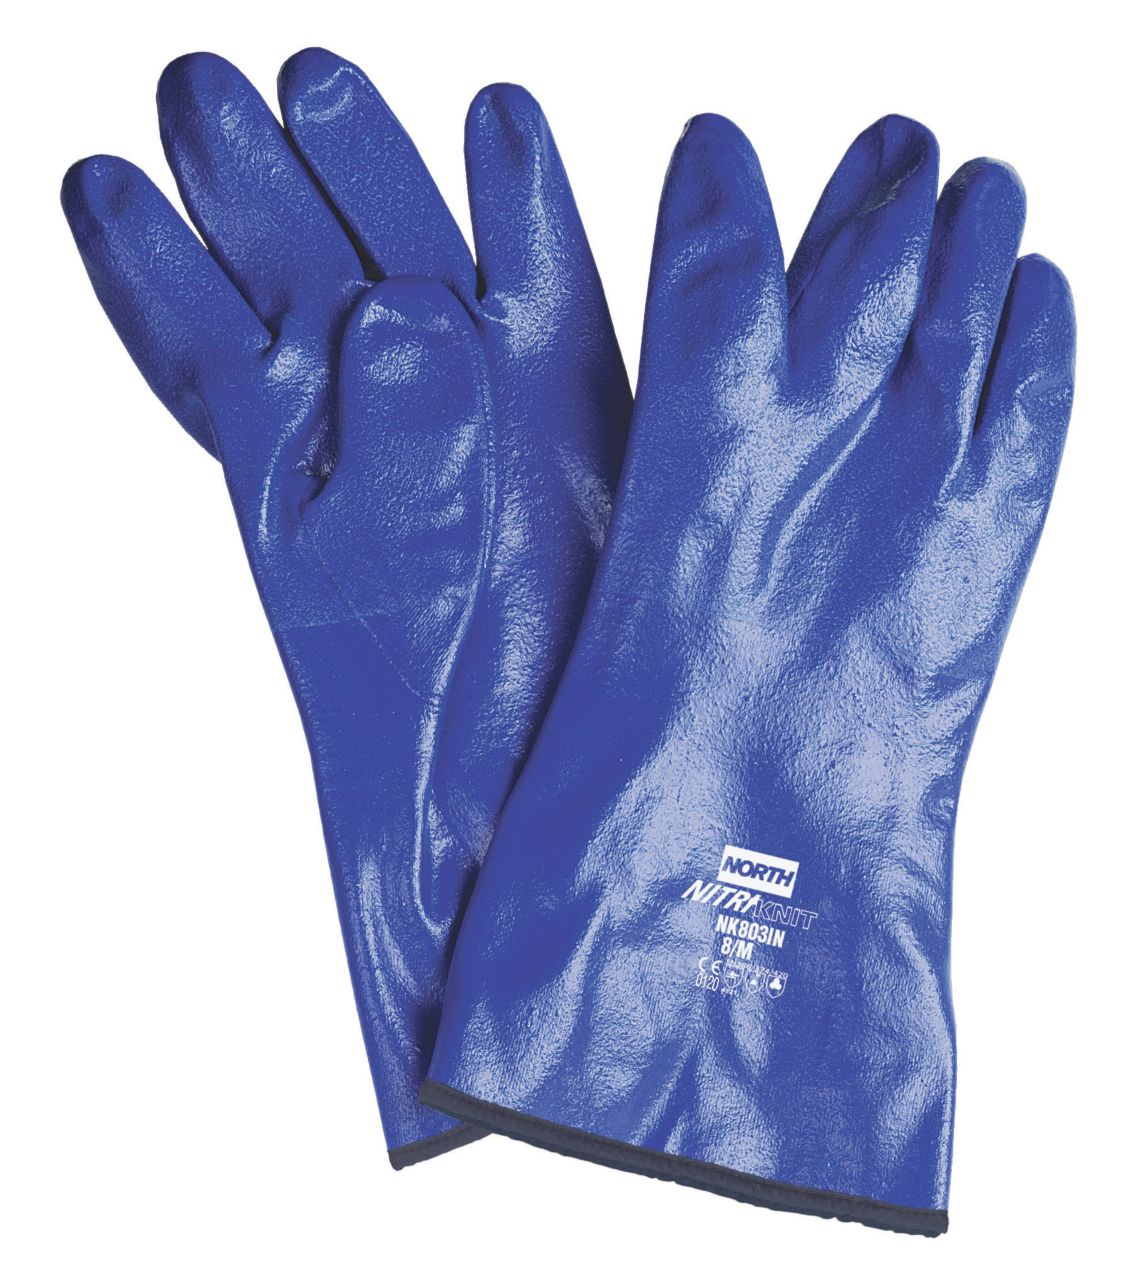 Nitri-Knit™ - Supported Nitrile Gloves - NK803IN